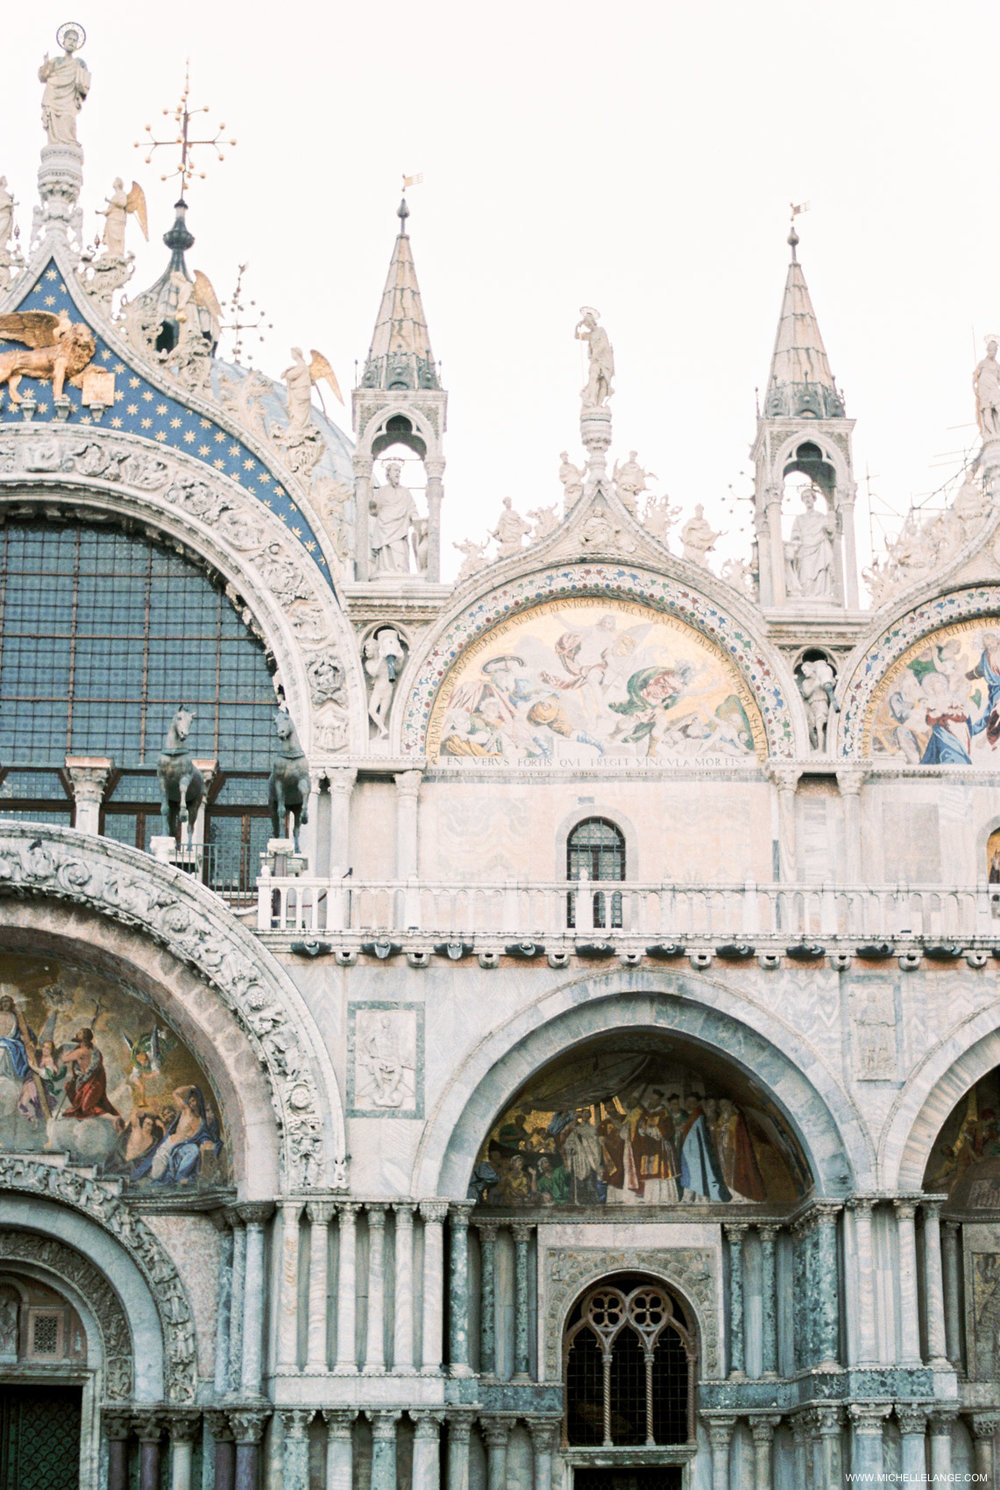 Venice Travel Photography - Piazza San Marco